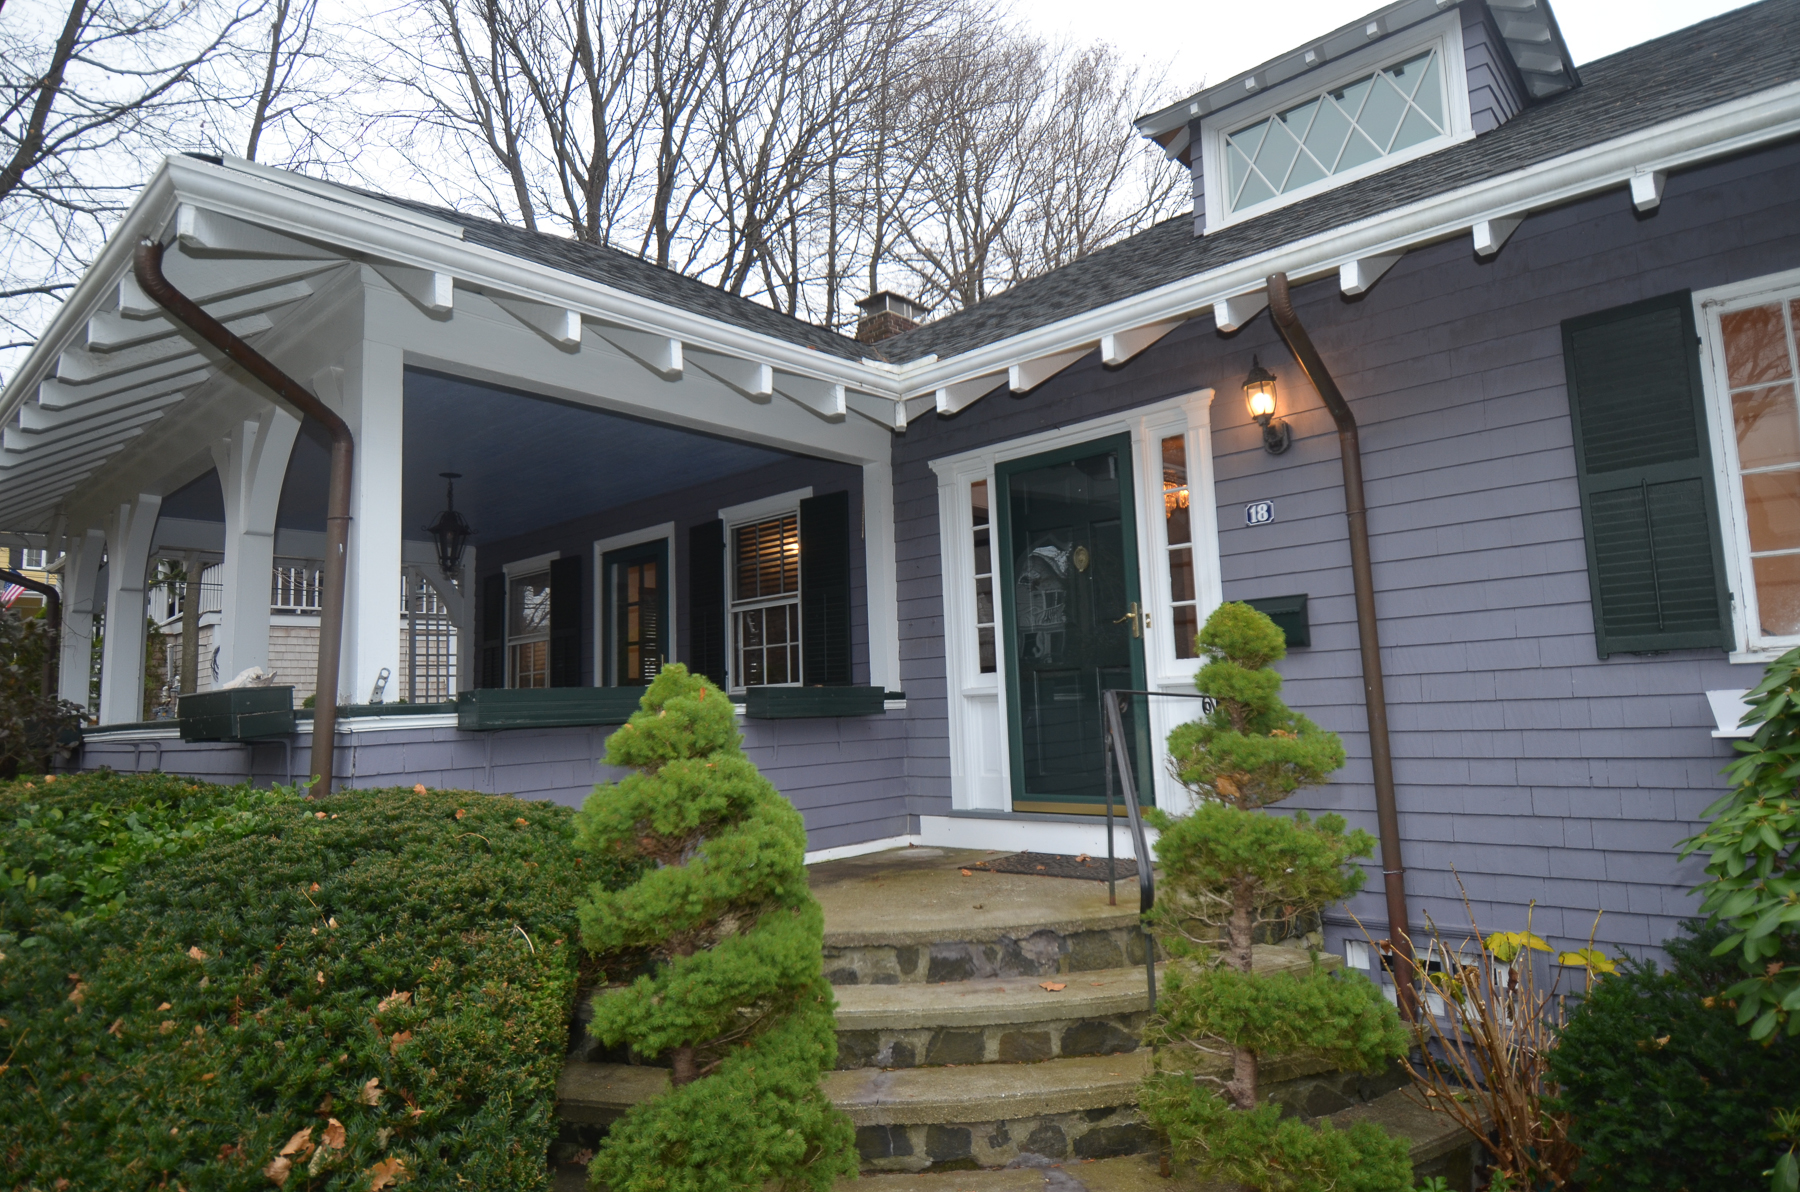 Single Family Home for Sale at English Cottage on Marblehead Neck 18 Ballast Lane Marblehead, Massachusetts 01945 United States